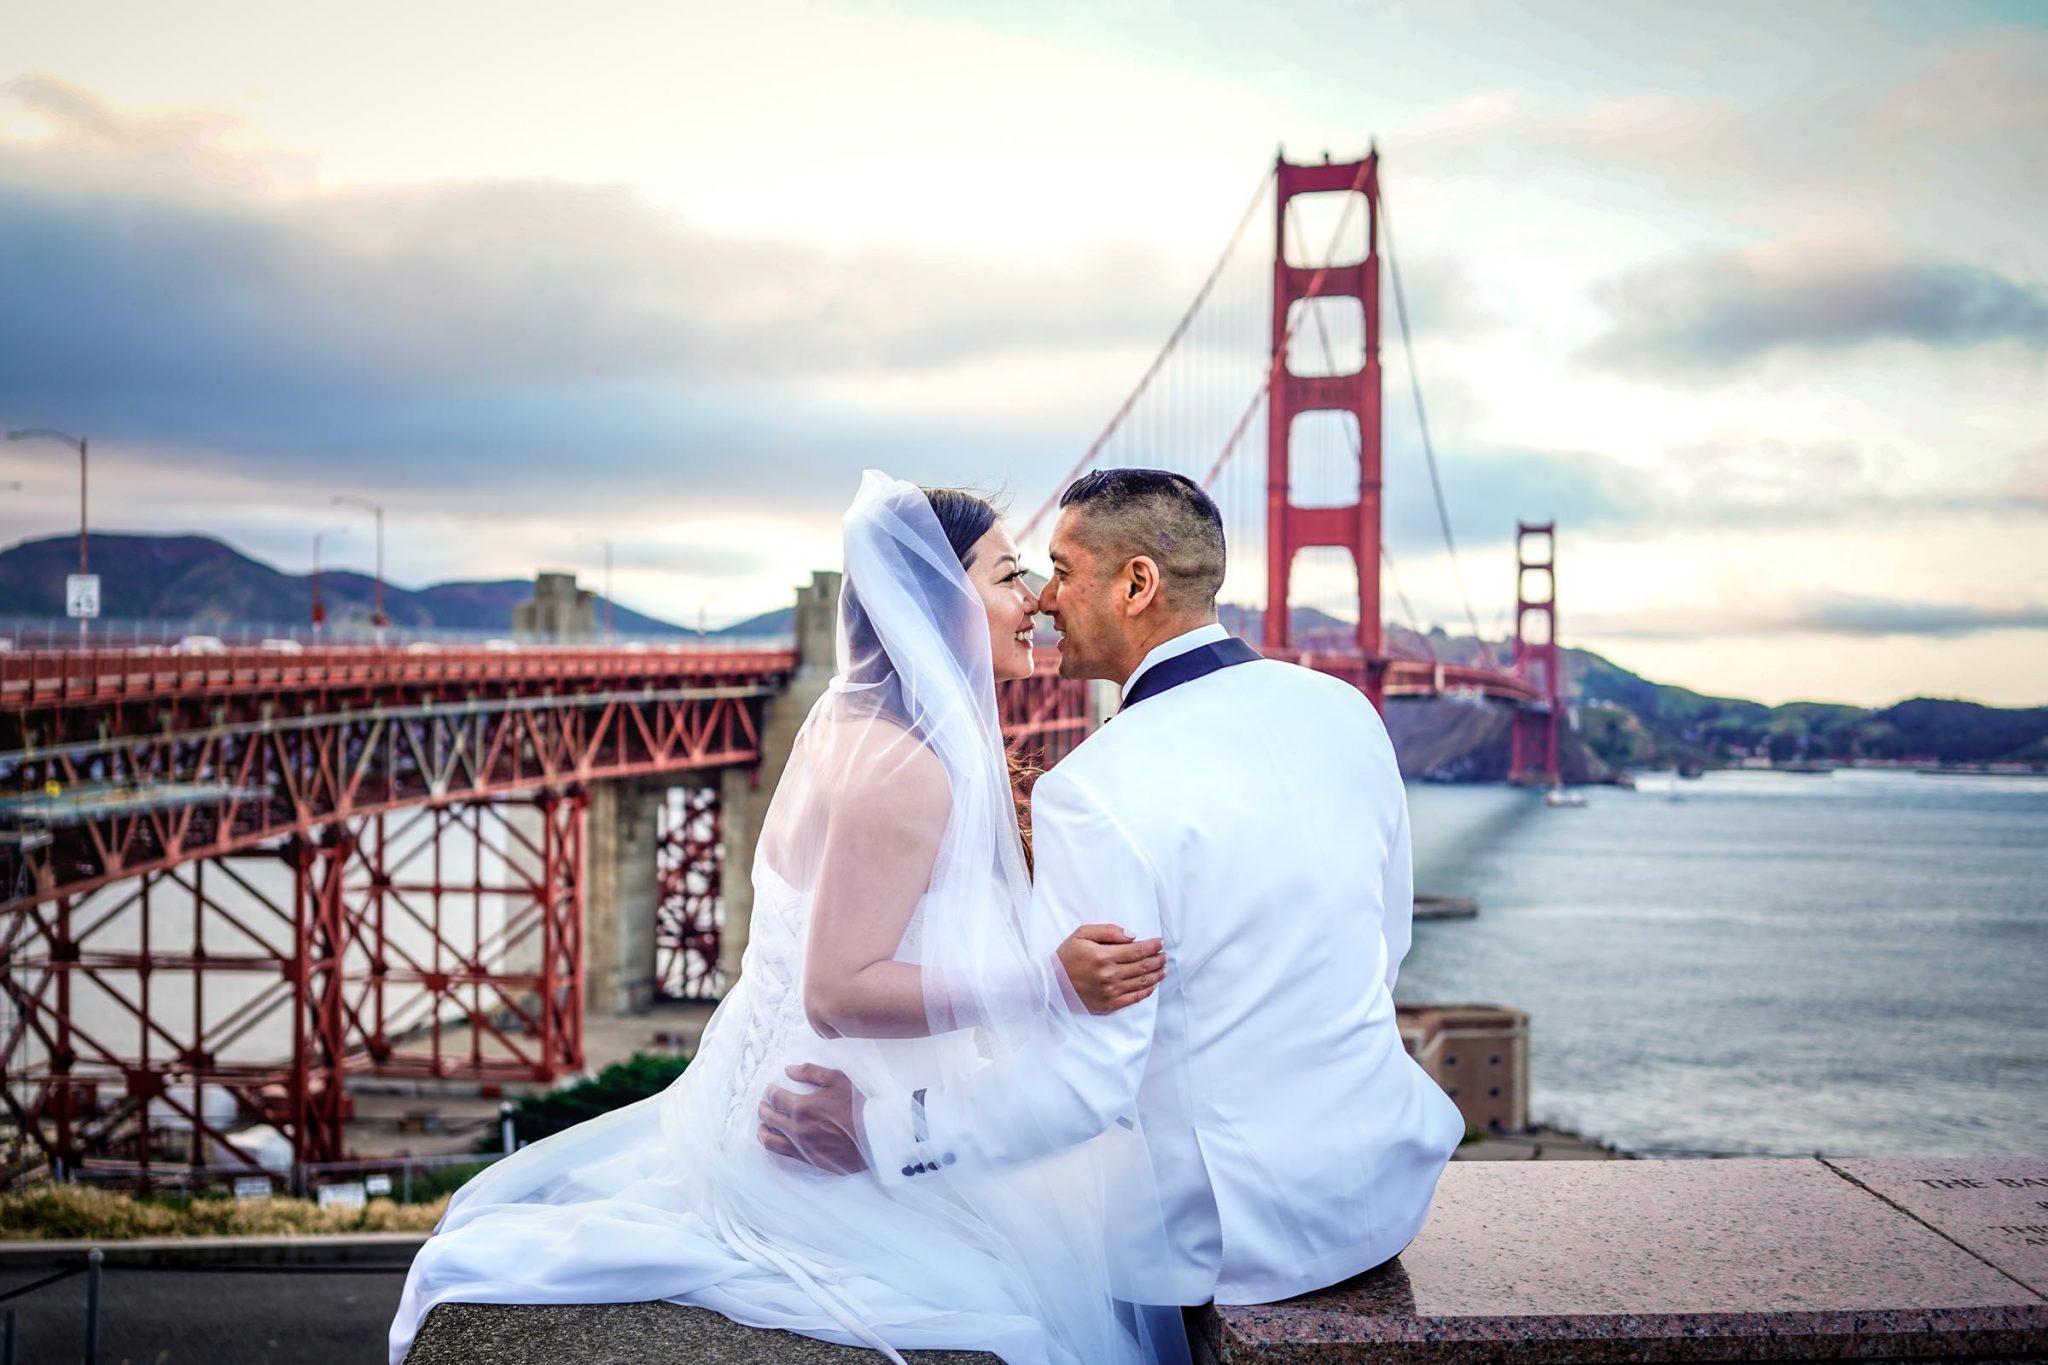 San Francisco pre-wedding photography session at the Golden Gate Bridge